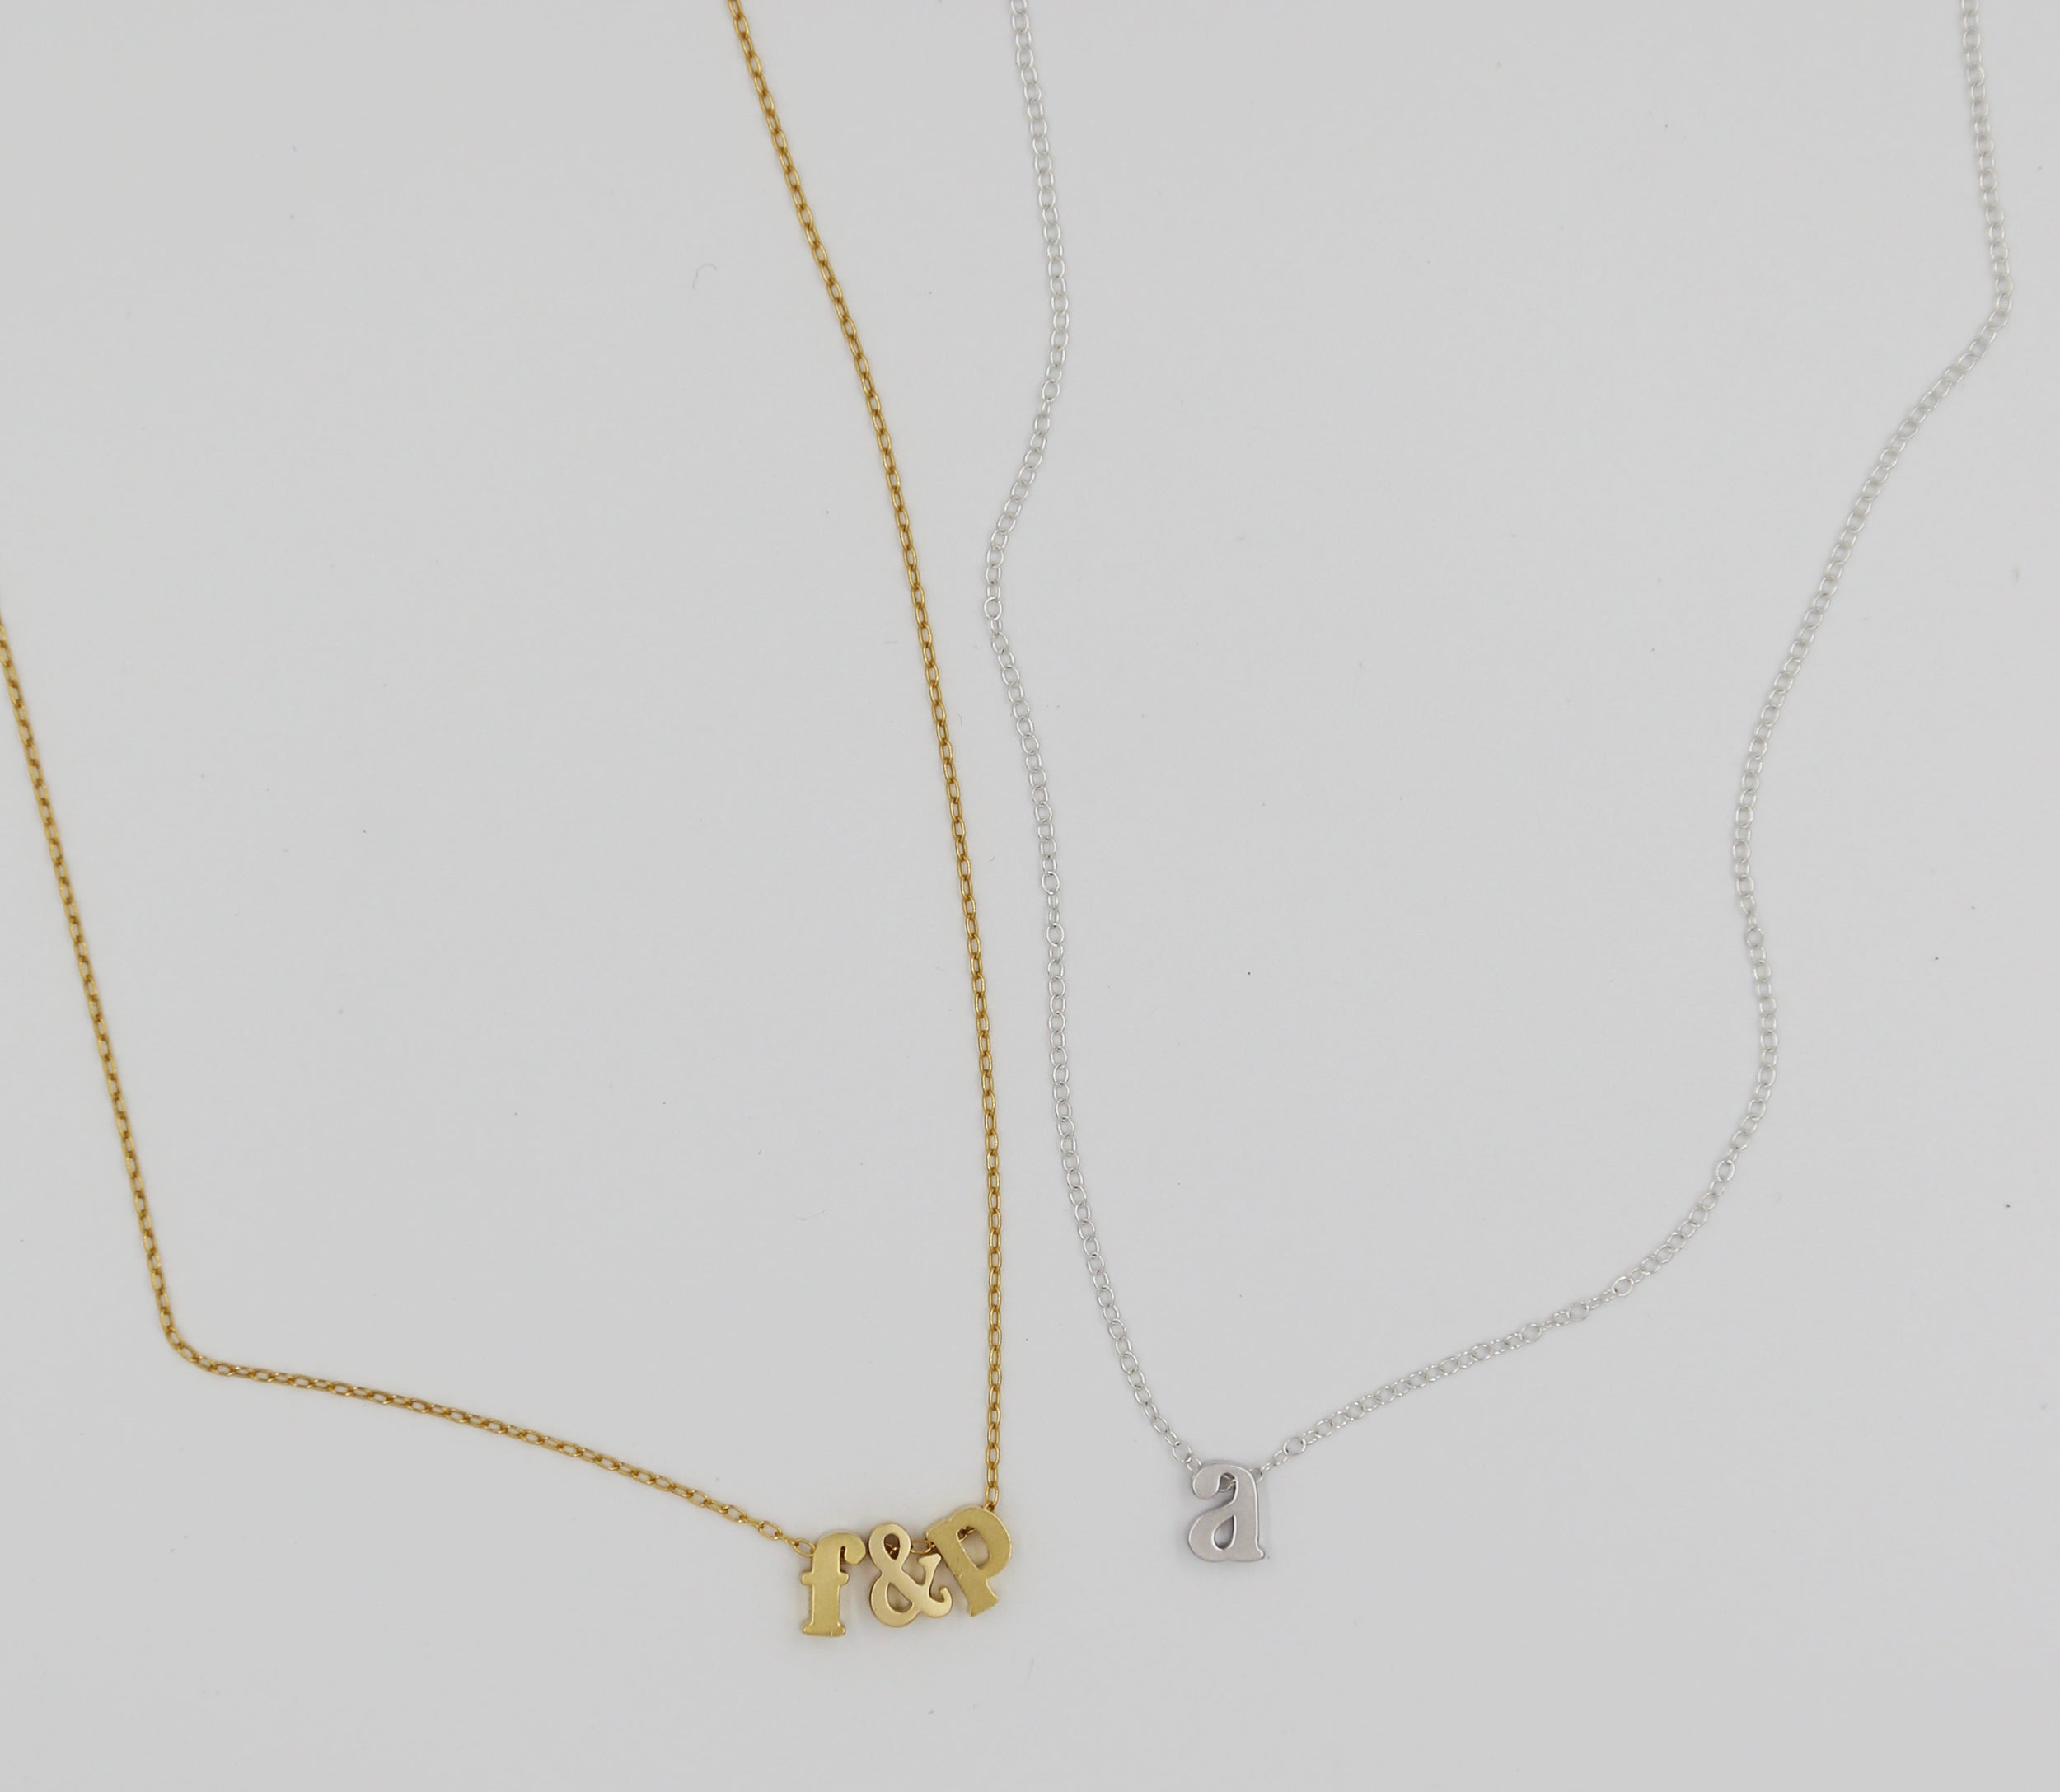 Double Letter - Monogrammed Necklace - Gold Fill or Sterling Silver